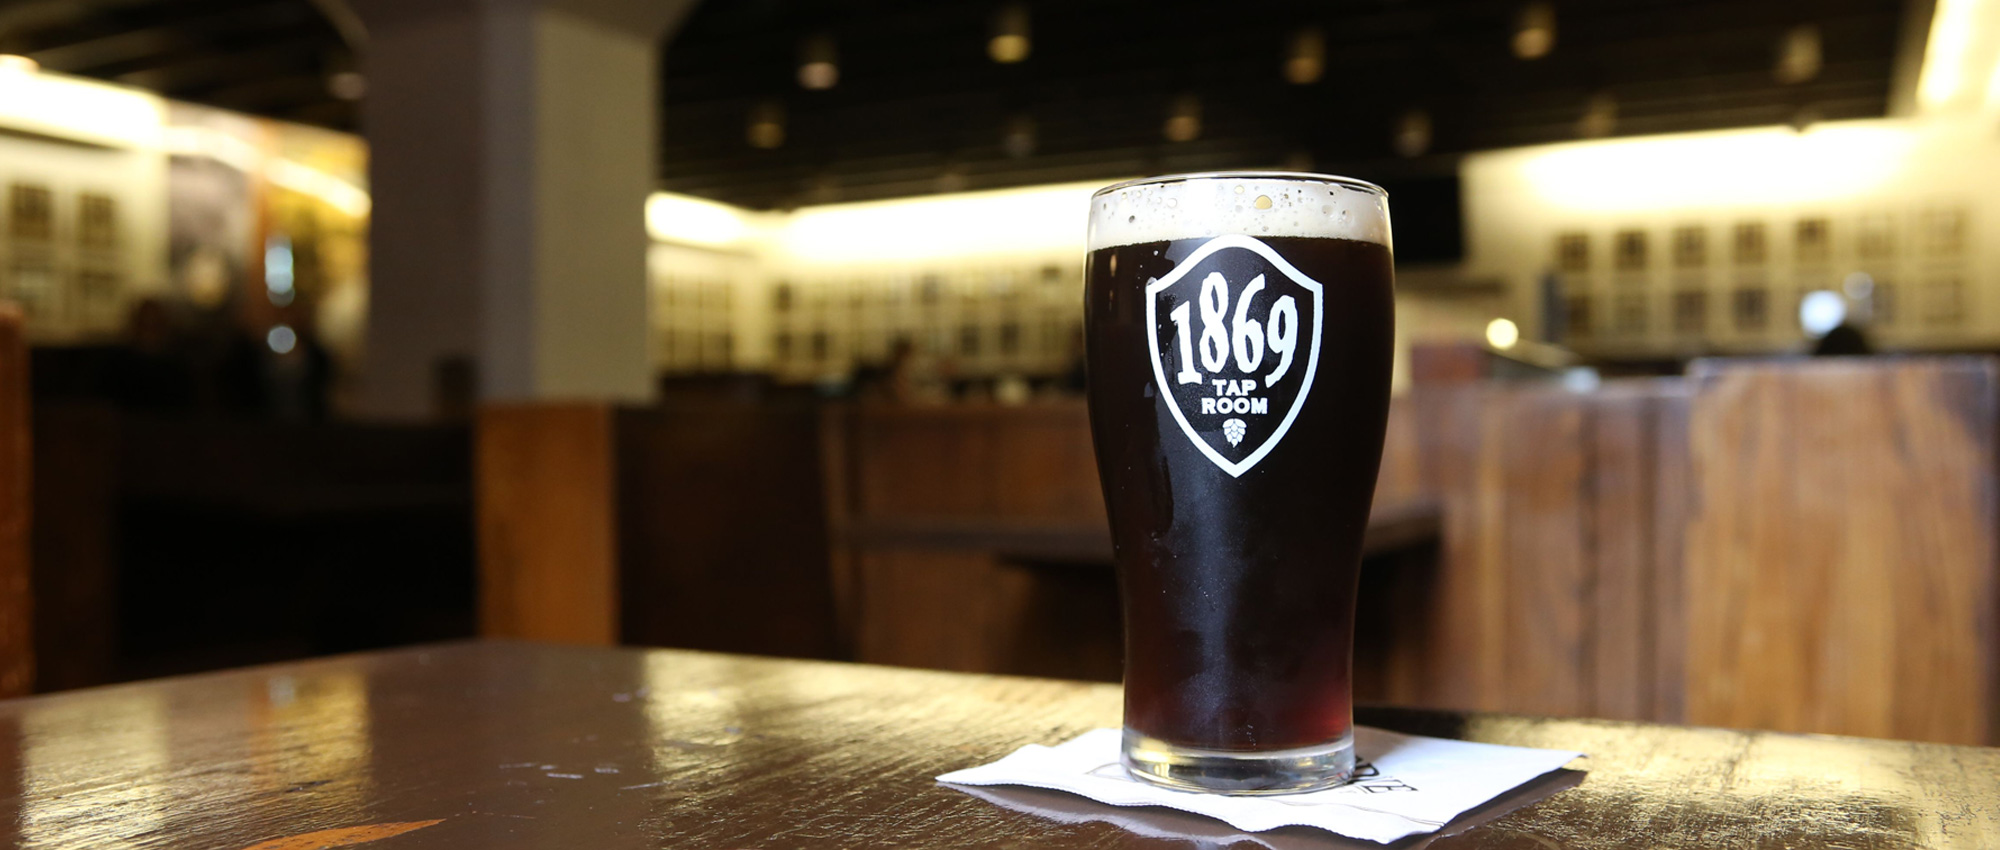 a glass of beer in the 1869 Tap Room at Purdue